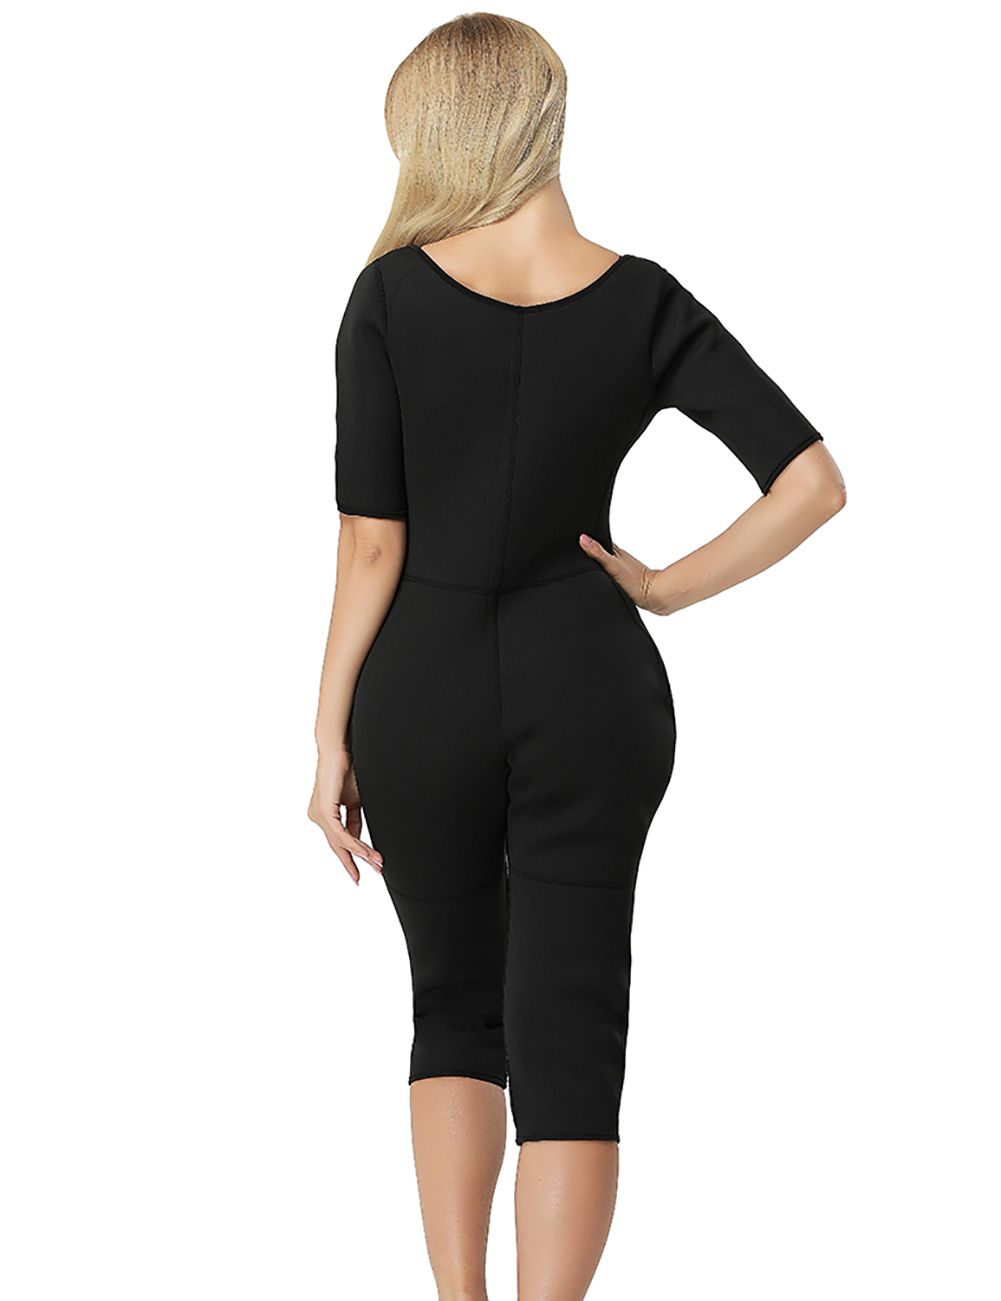 //cdn.affectcloud.com/lover-beauty/upload/imgs/Shapewear/Neoprene_Waist_Trainer/LB40047/LB40047-201909235d8859d98c528.jpg